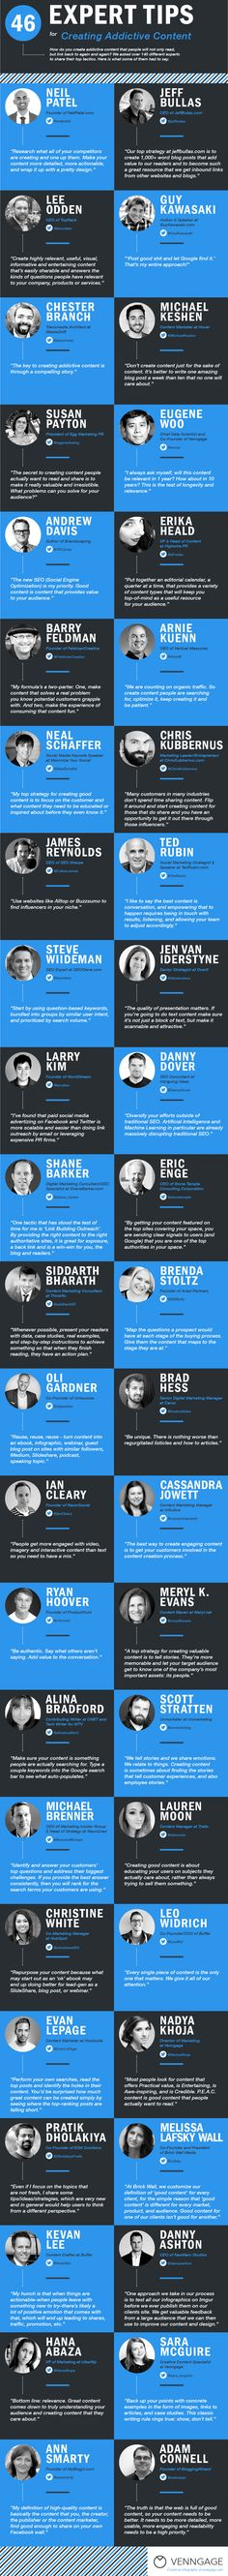 46 Experts Share Their Best Tips on Making Content Shareable [Infographic], via @HubSpot